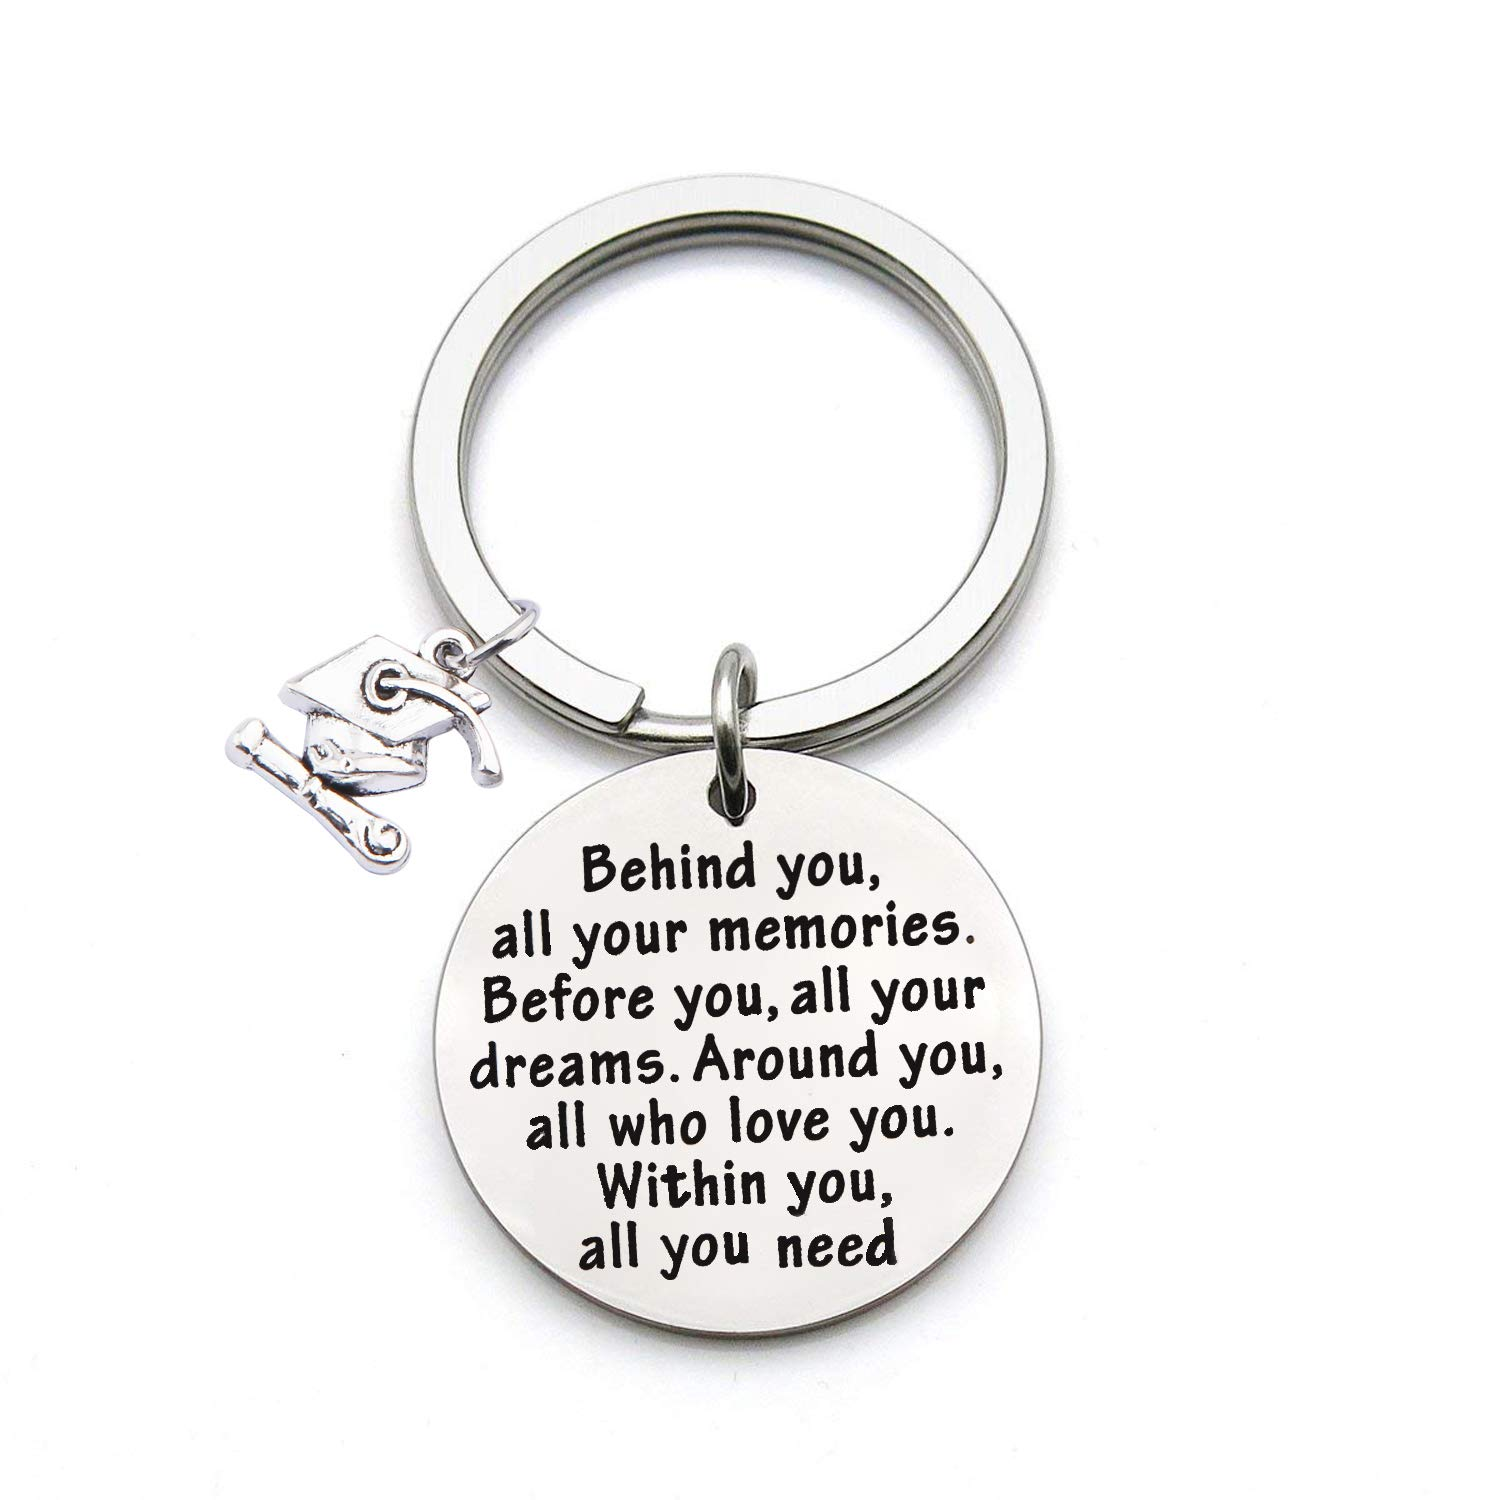 FEELMEM Graduation Gifts Behind You All Memories Before You All Your Dream Graduation Keychain Inspirational Graduates Gifts 2018, 2019 (Graduation Gift)